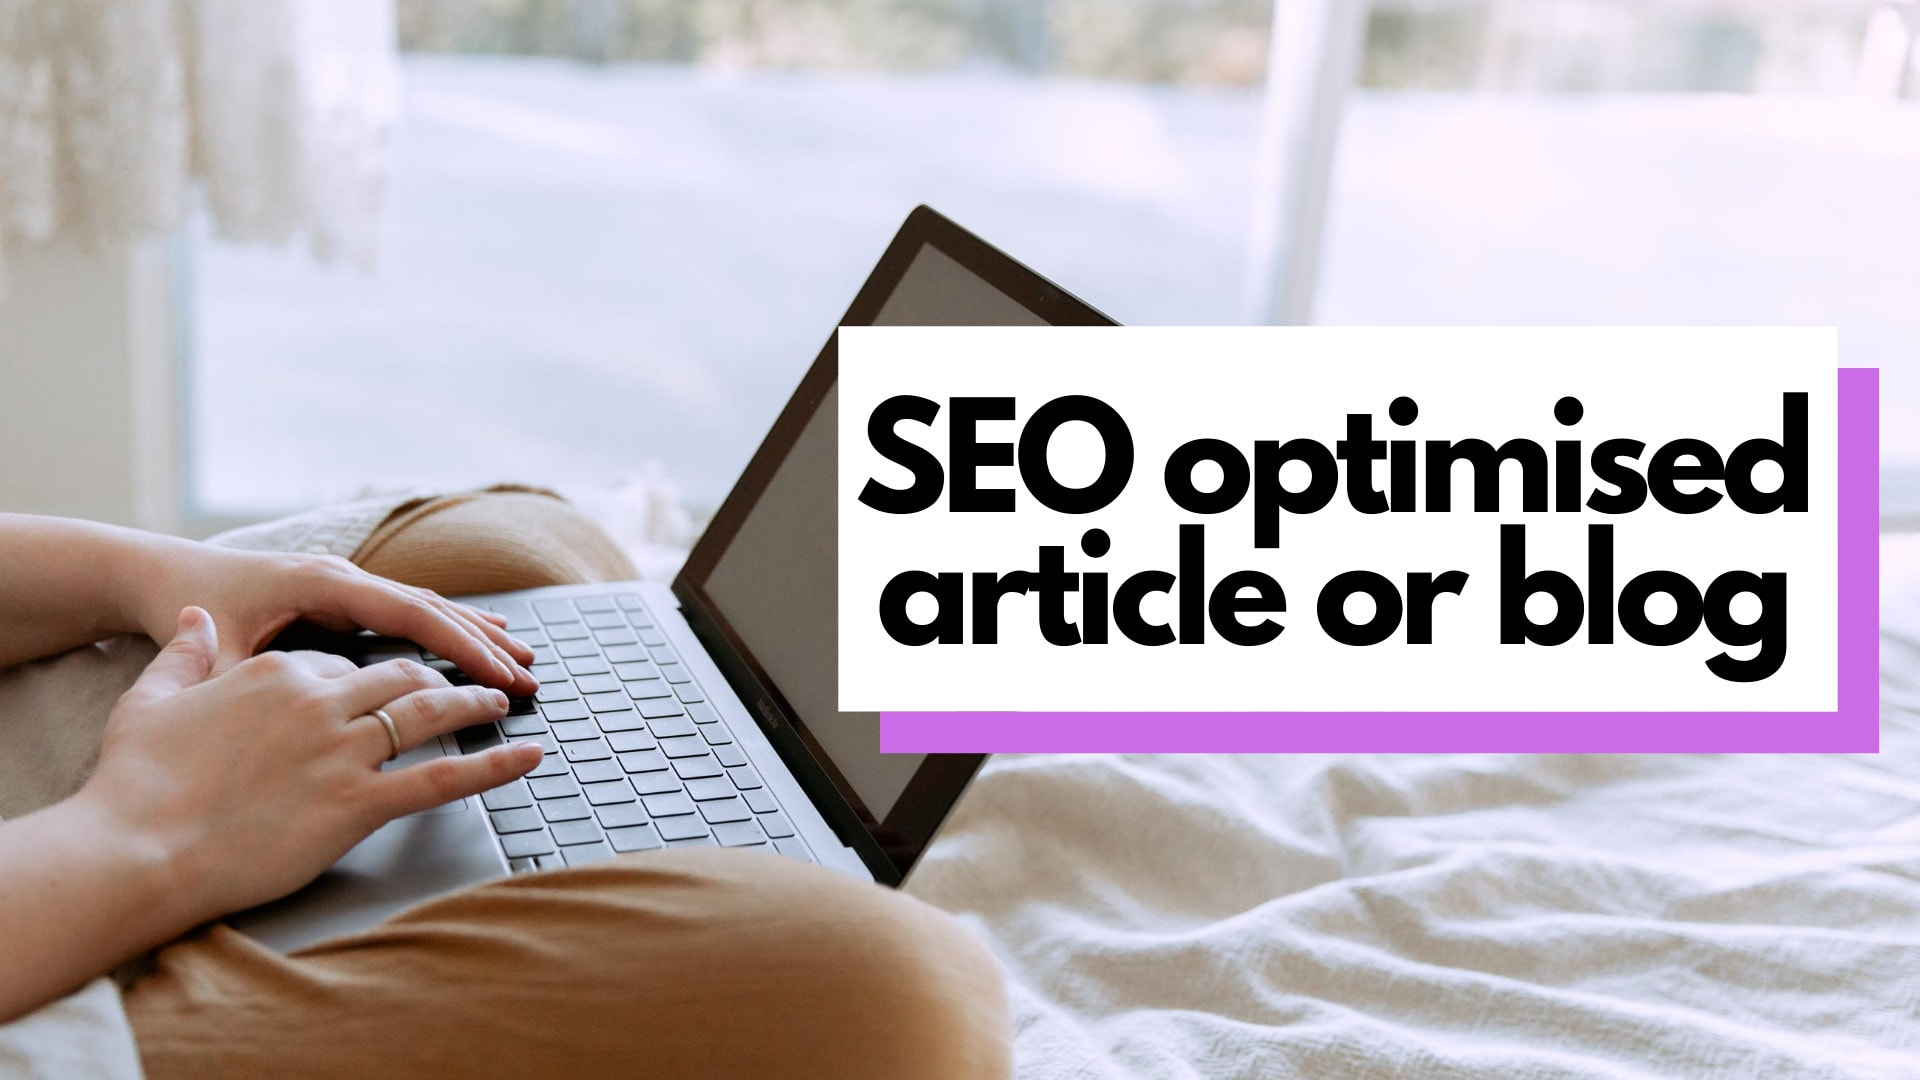 I will write compelling SEO friendly articles for your website or blog